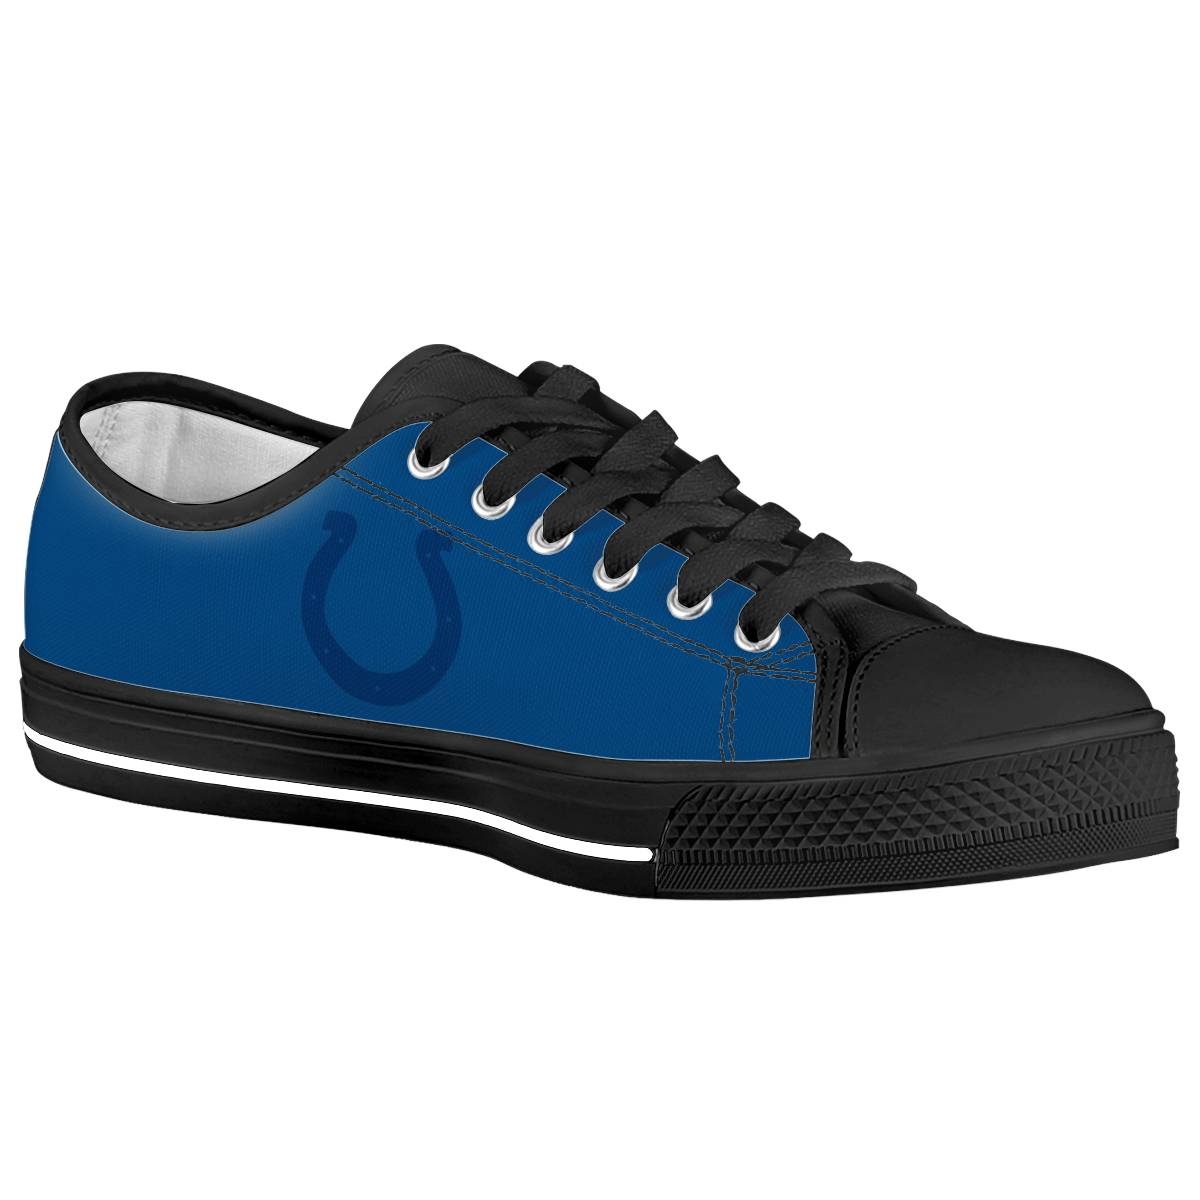 Men's Indianapolis Colts Low Top Canvas Sneakers 002